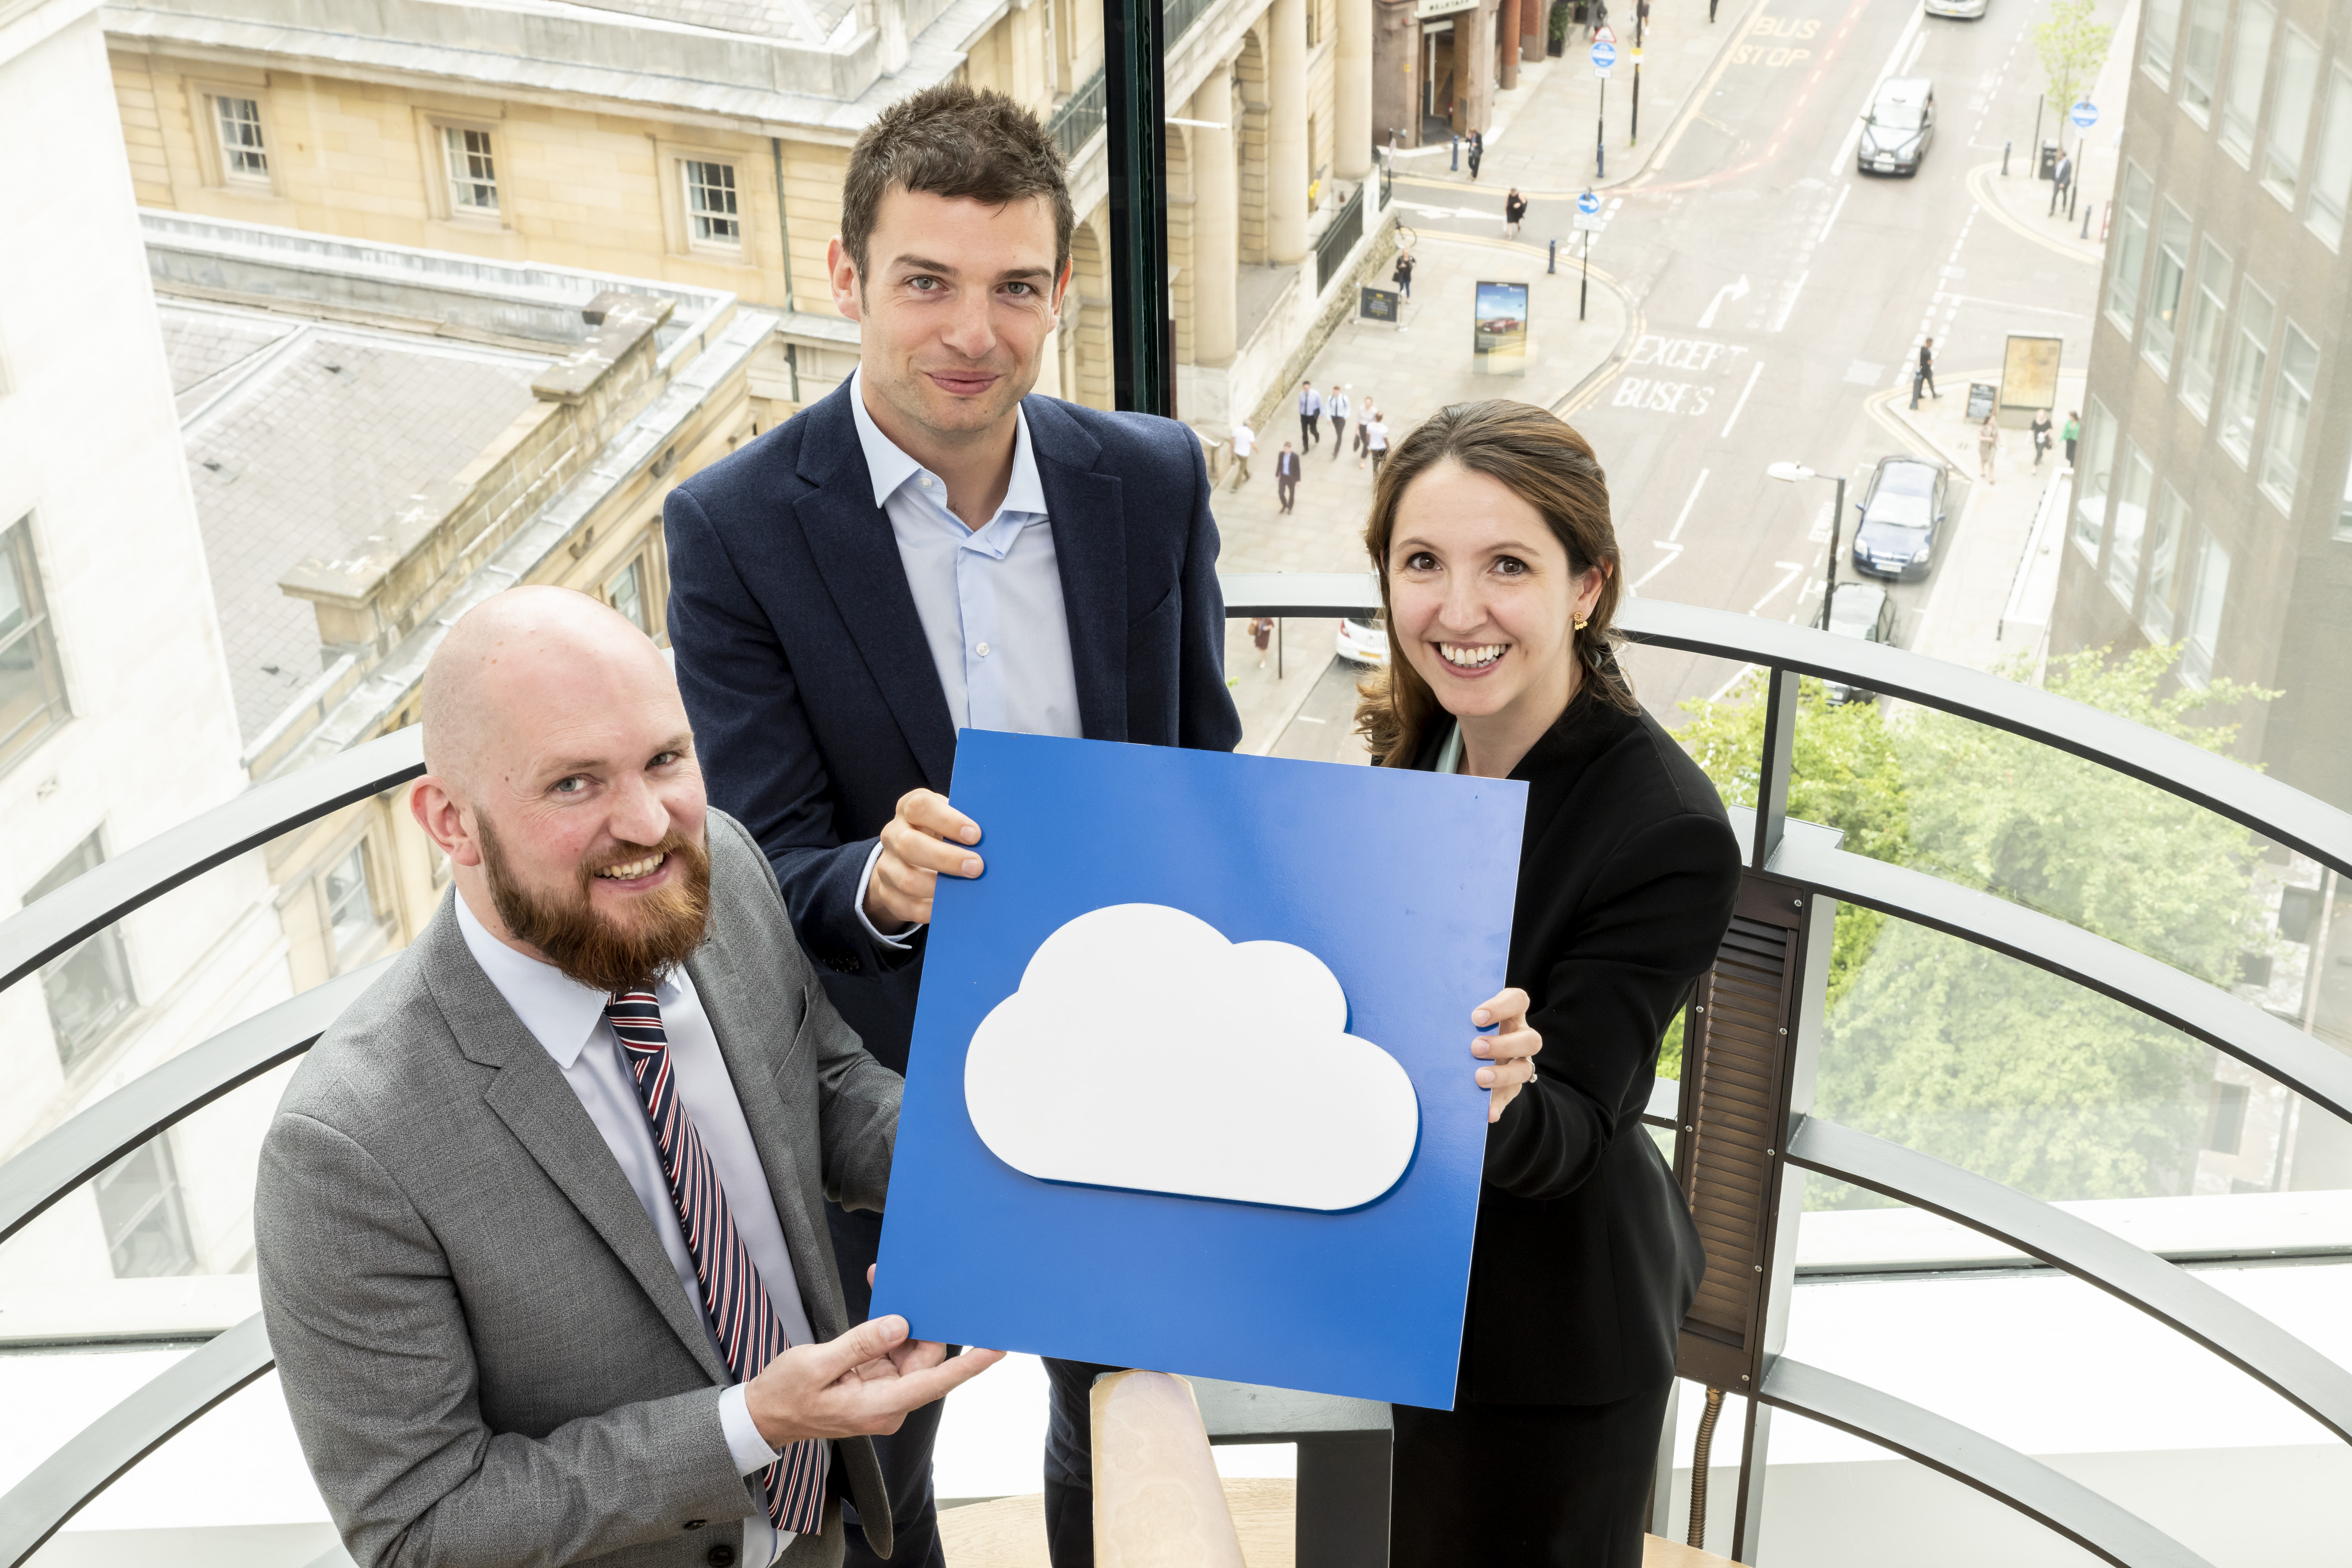 ParkCloud expands shareholder base as it bolsters growth plans